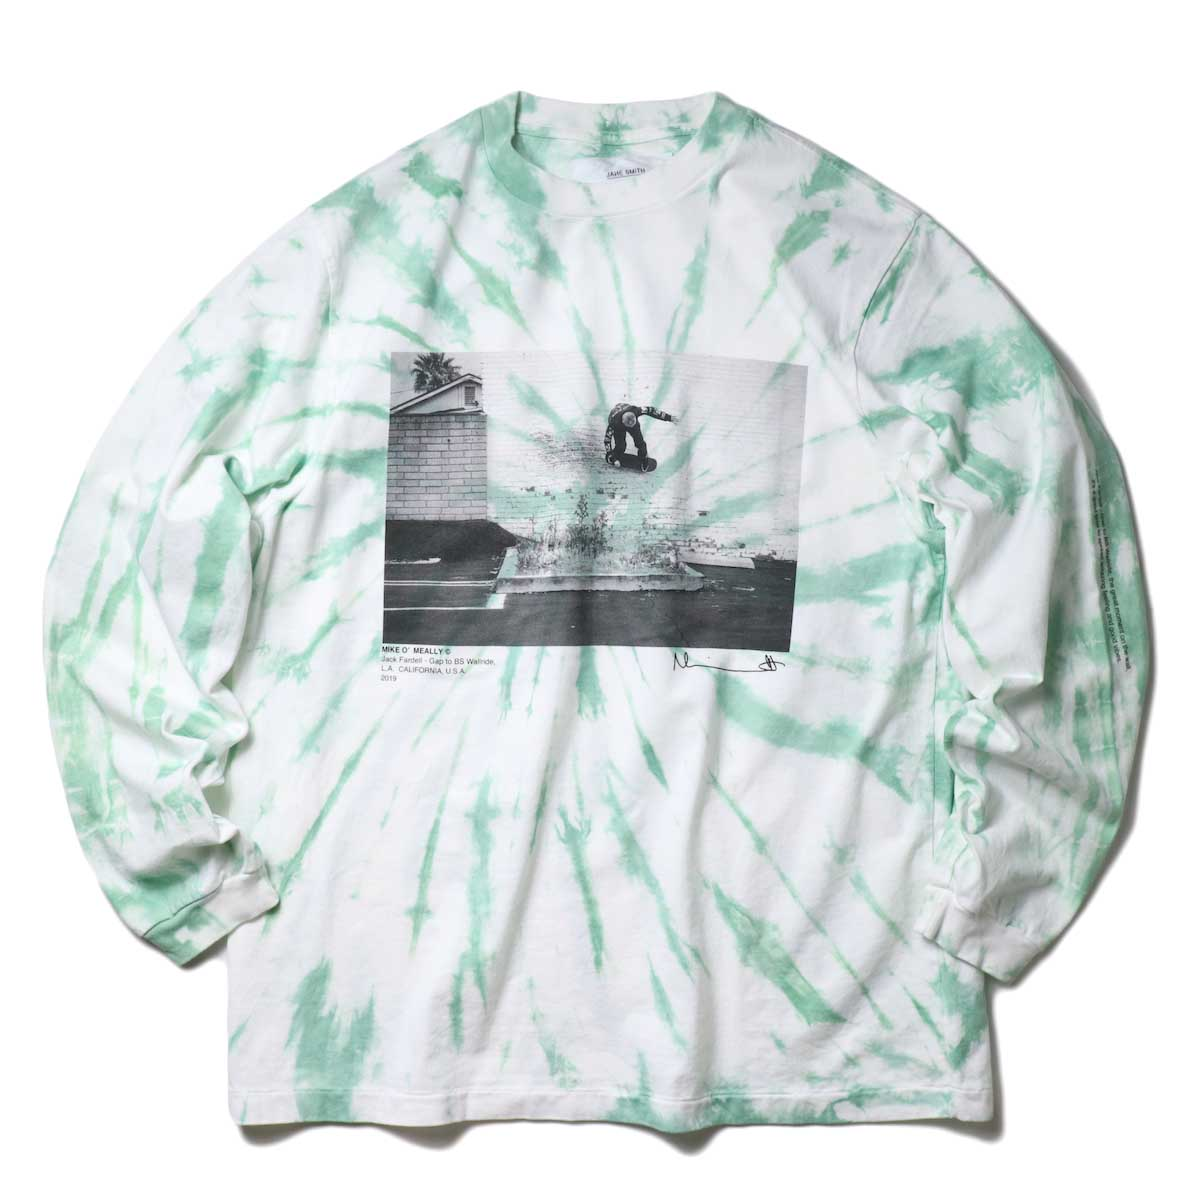 JANE SMITH / JACK FARDELL WALL RIDE L/S T-SHIRT (Green)